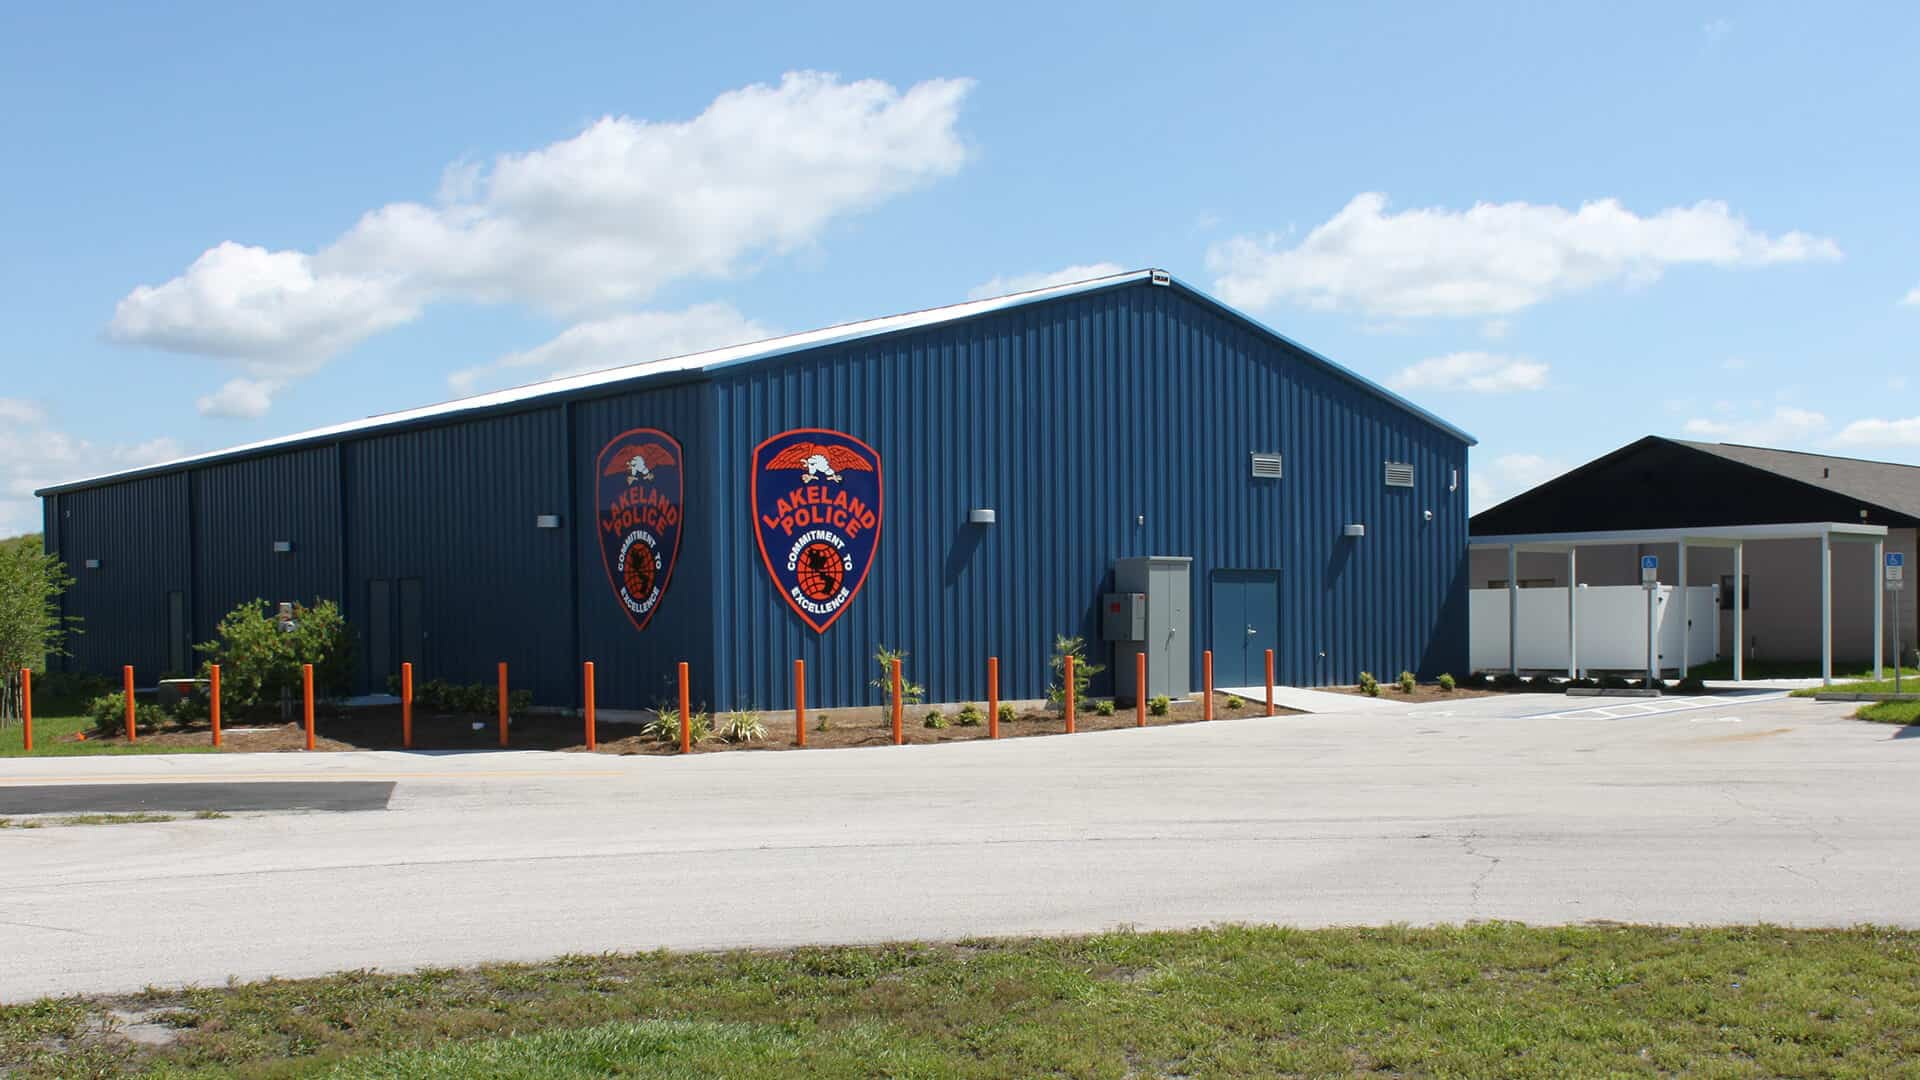 City of Lakeland Police Department Training Facility - Main